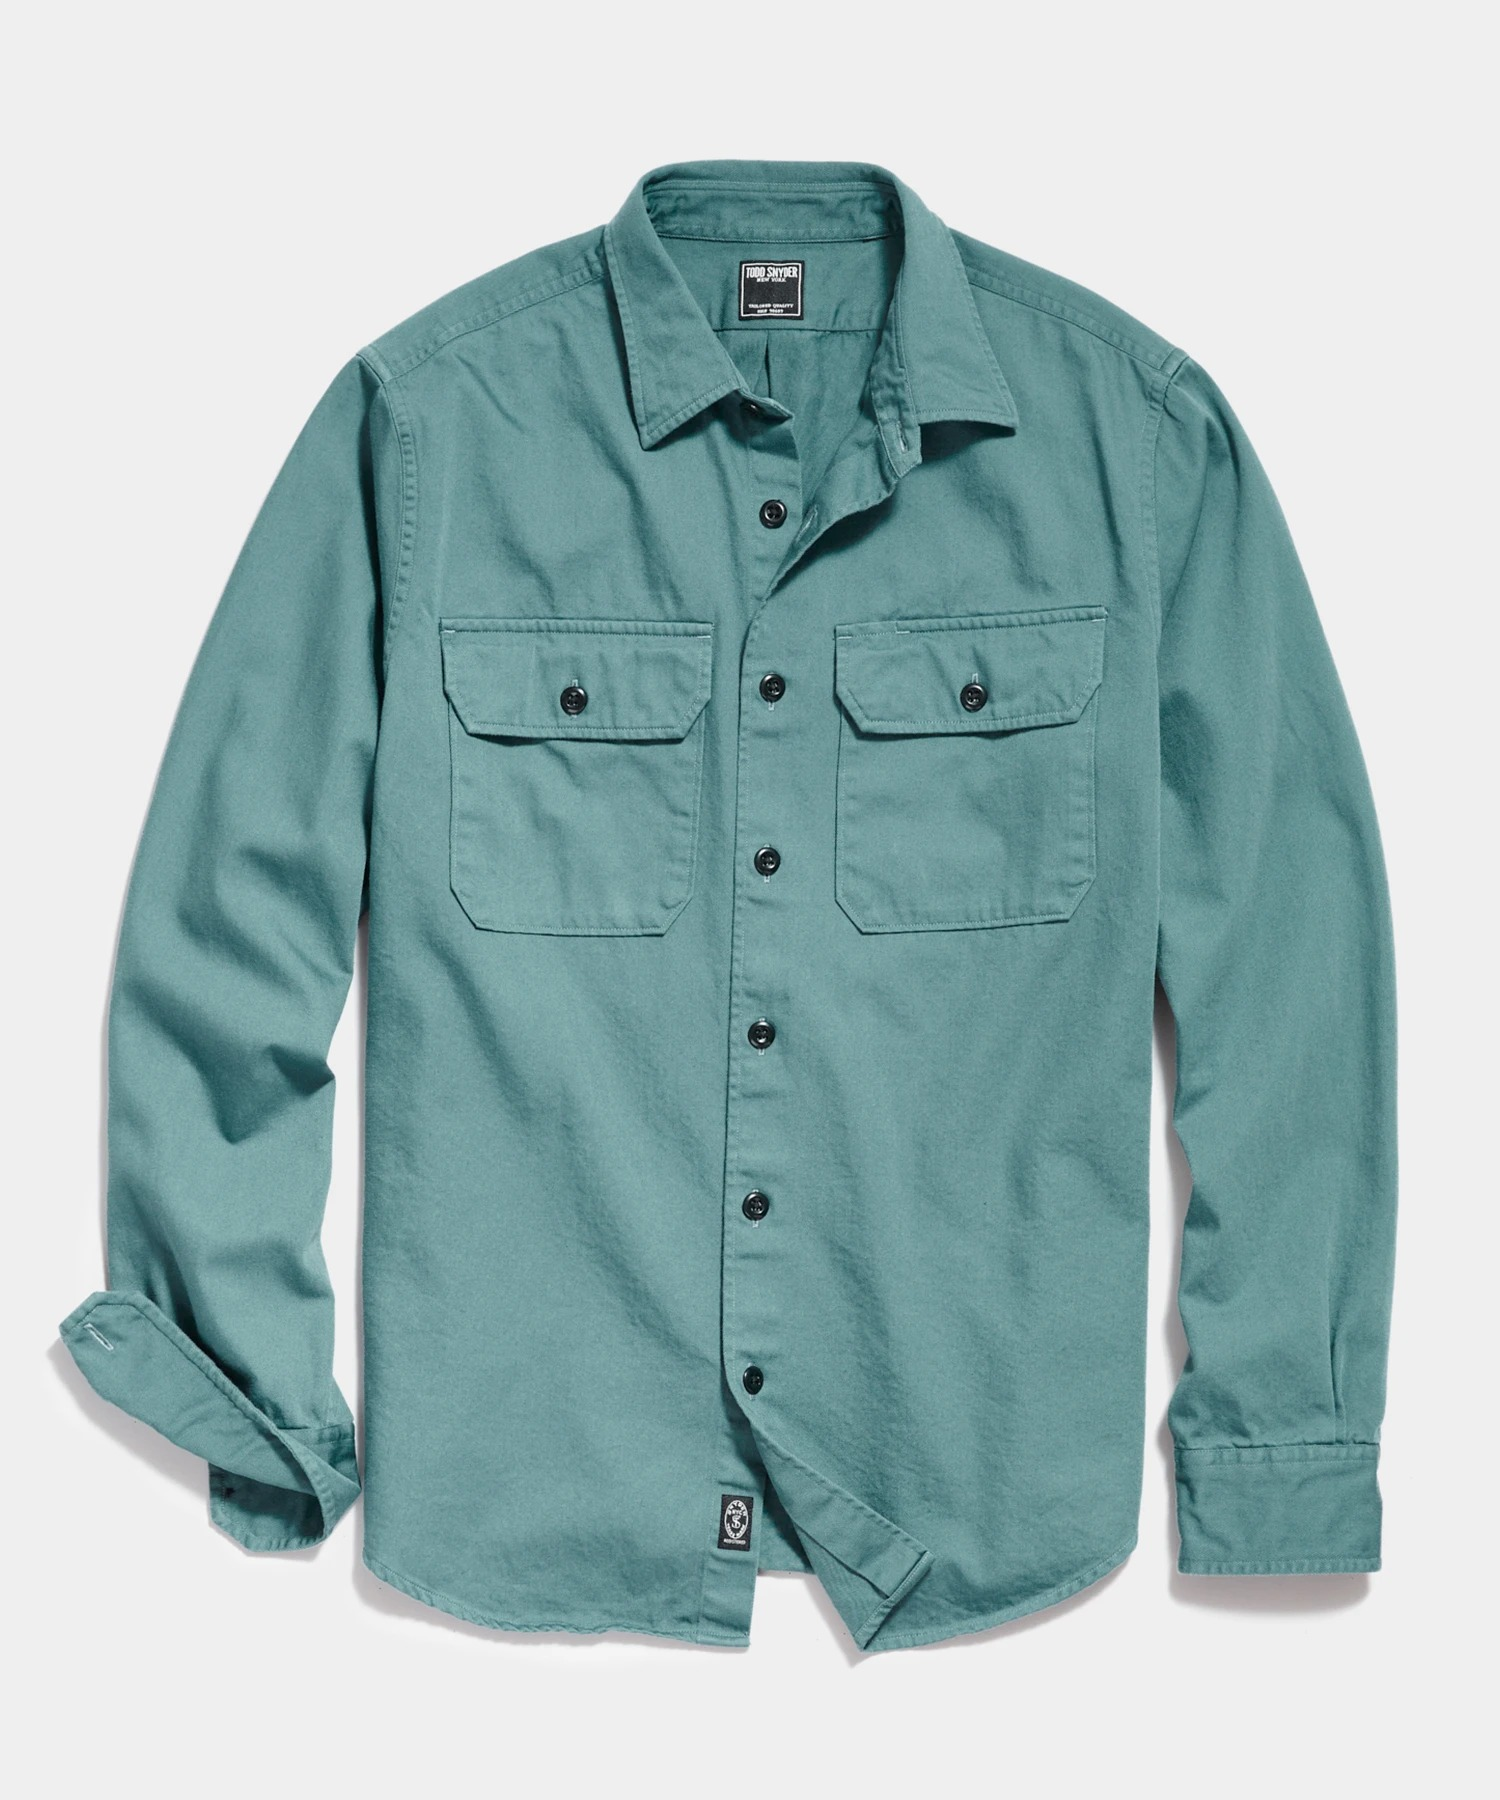 Todd Snyder Two Pocket Utility Long Sleeve Shirt